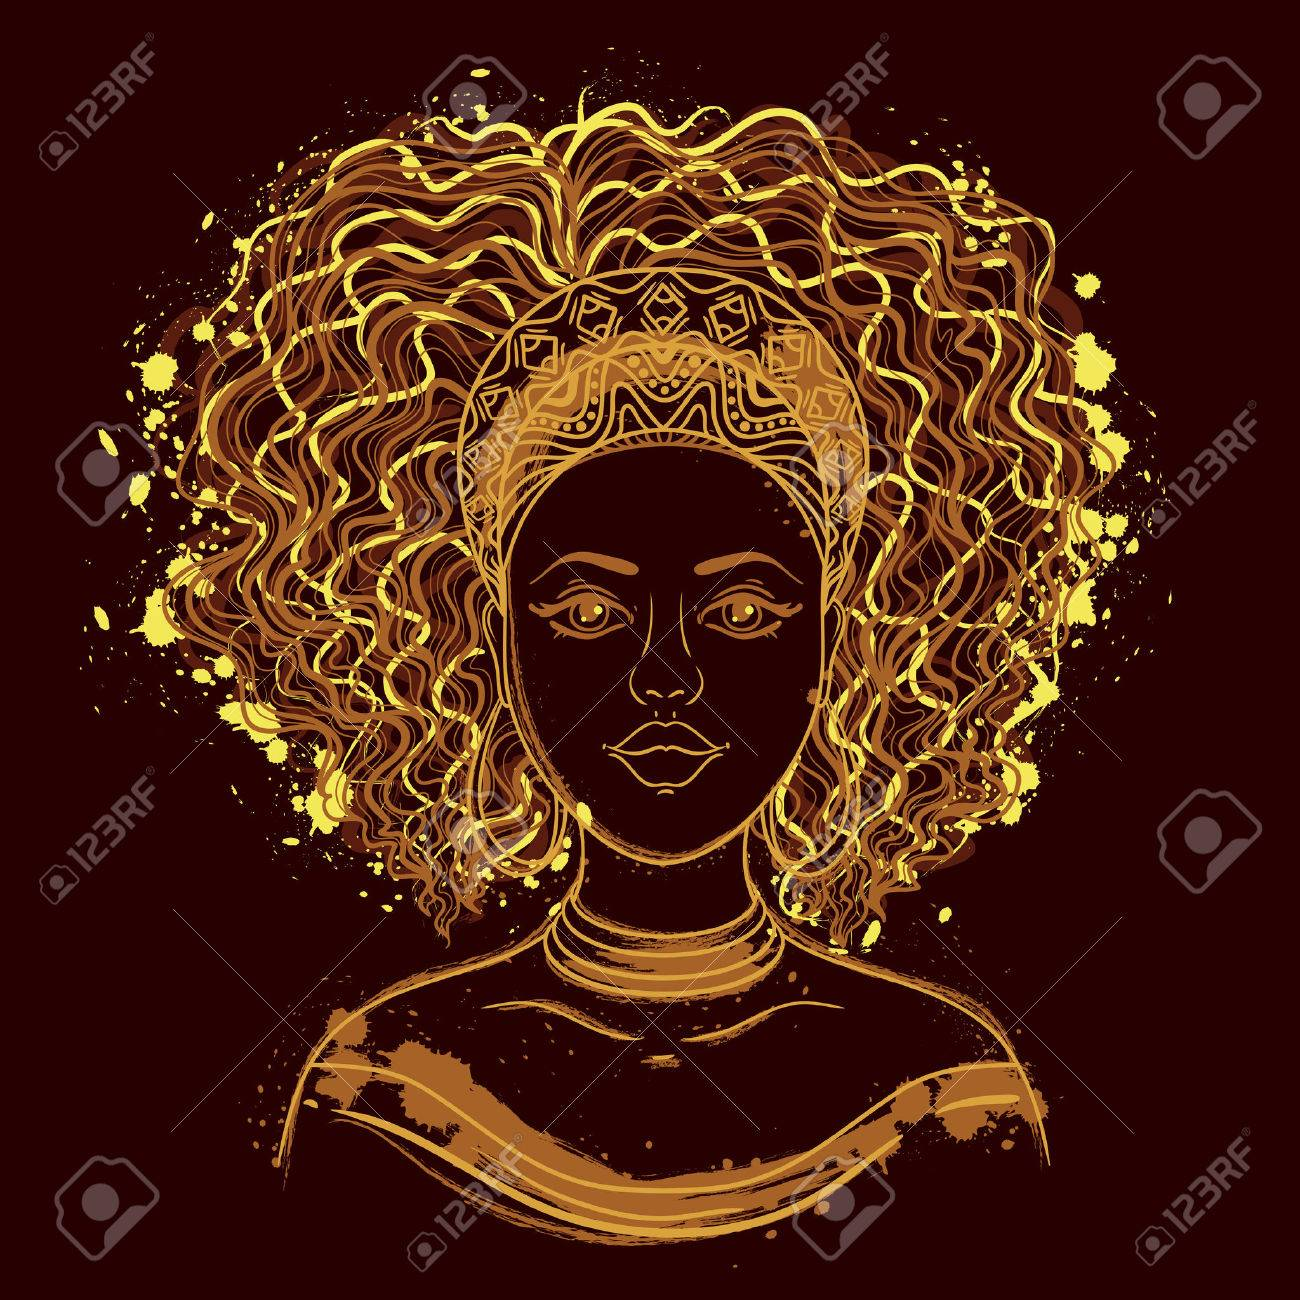 Portrait of African woman. - 63173453